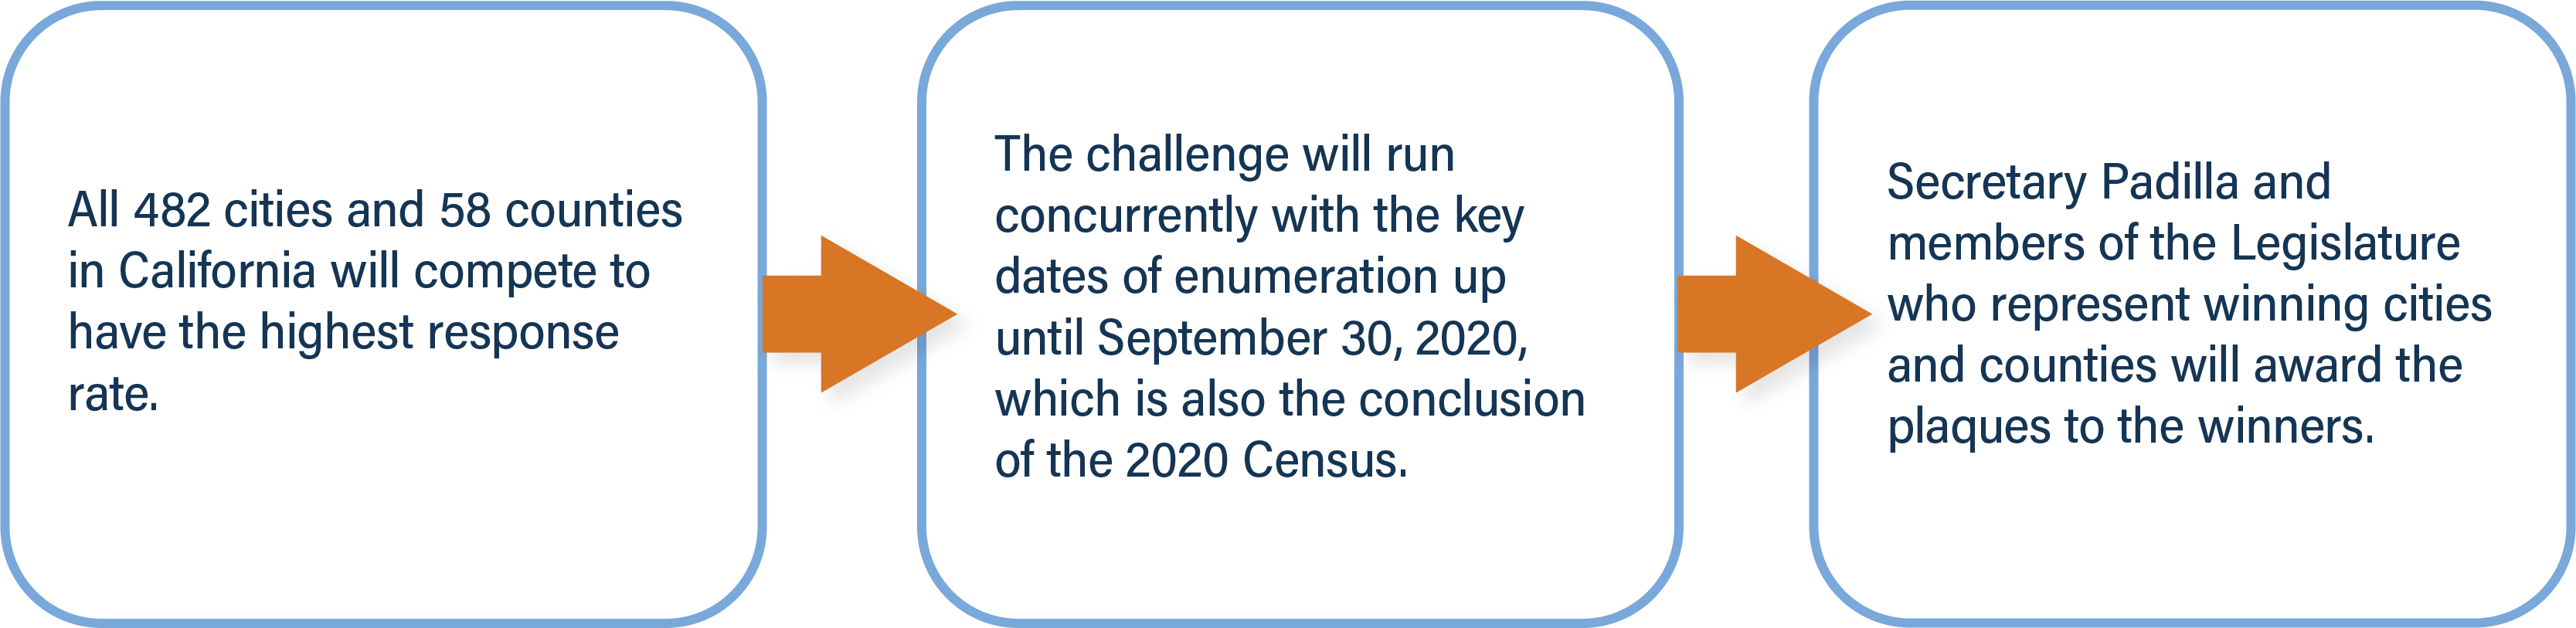 All 482 cities and 58 counties in California will compete to have the highest response rate.(Next Section) The challenge will run concurrently with the key dates of enumeration up until September 30, 2020, which is also the conclusion of the 2020 Census. (Next Section) Secretary Padilla and members of the Legislature who represent winning cities and counties will award the plaques to the winners.